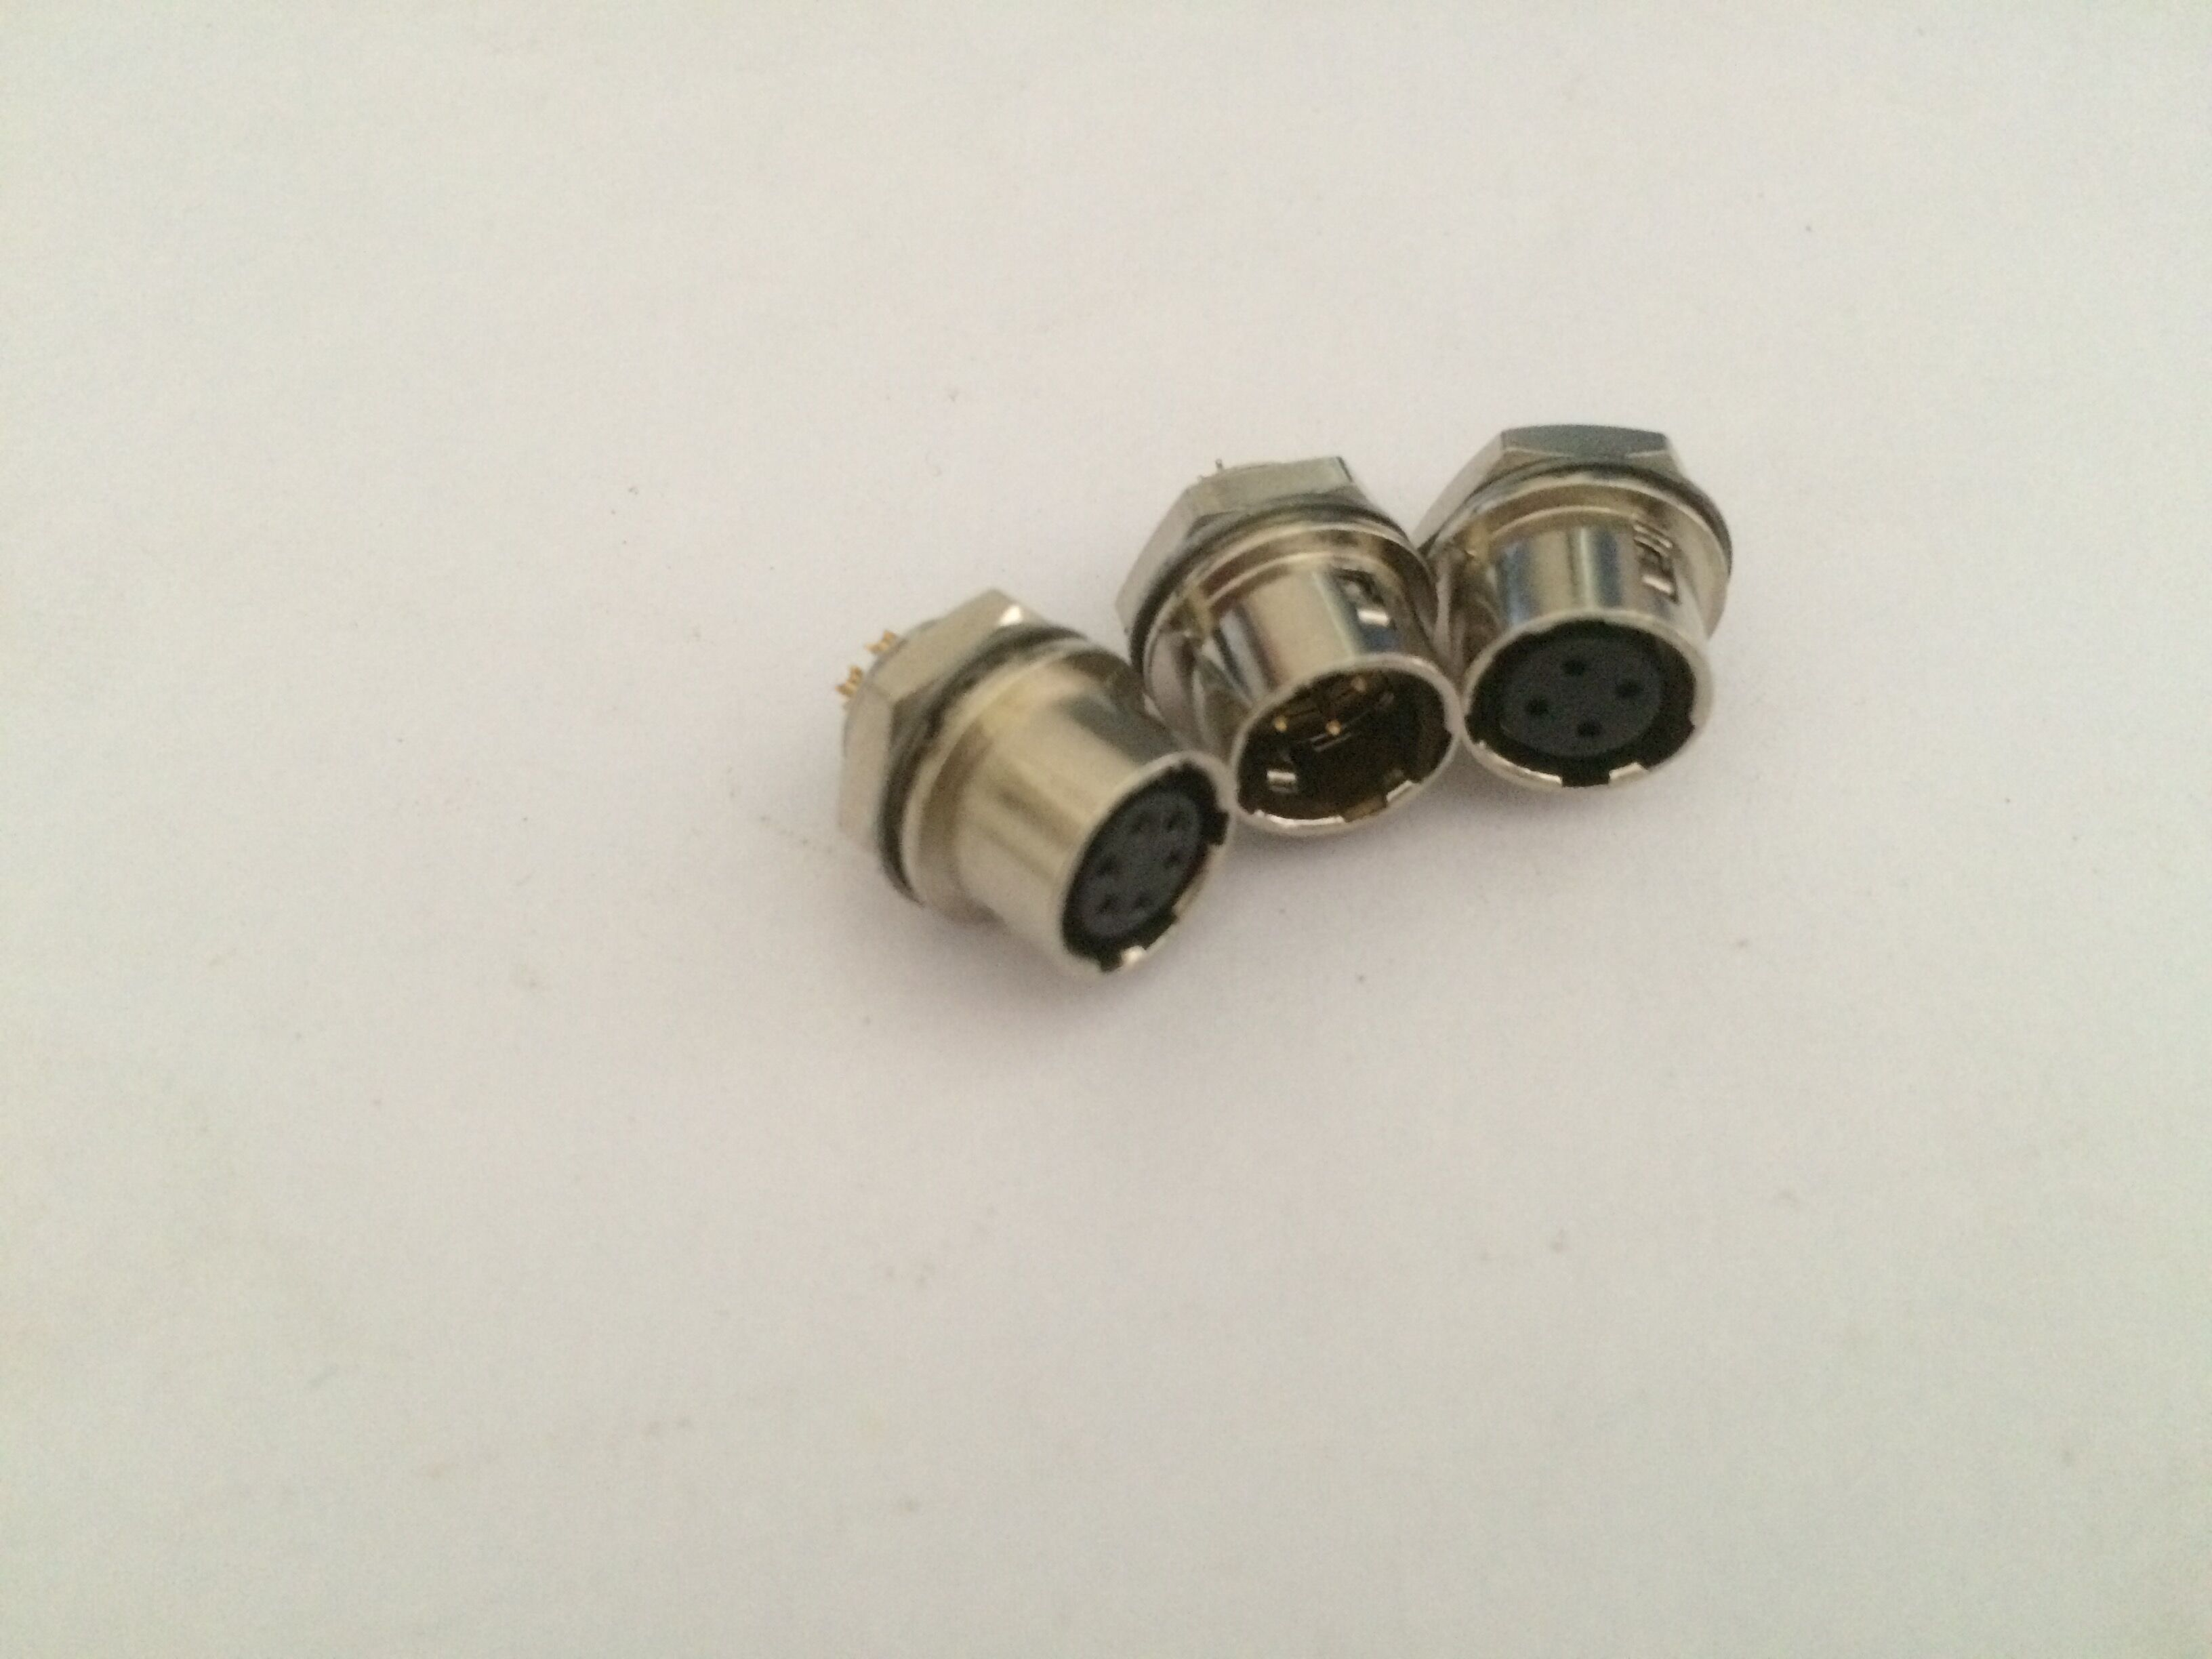 Push Pull circular connectors Hirose 7 pin male female socket HR10A-7R-4S